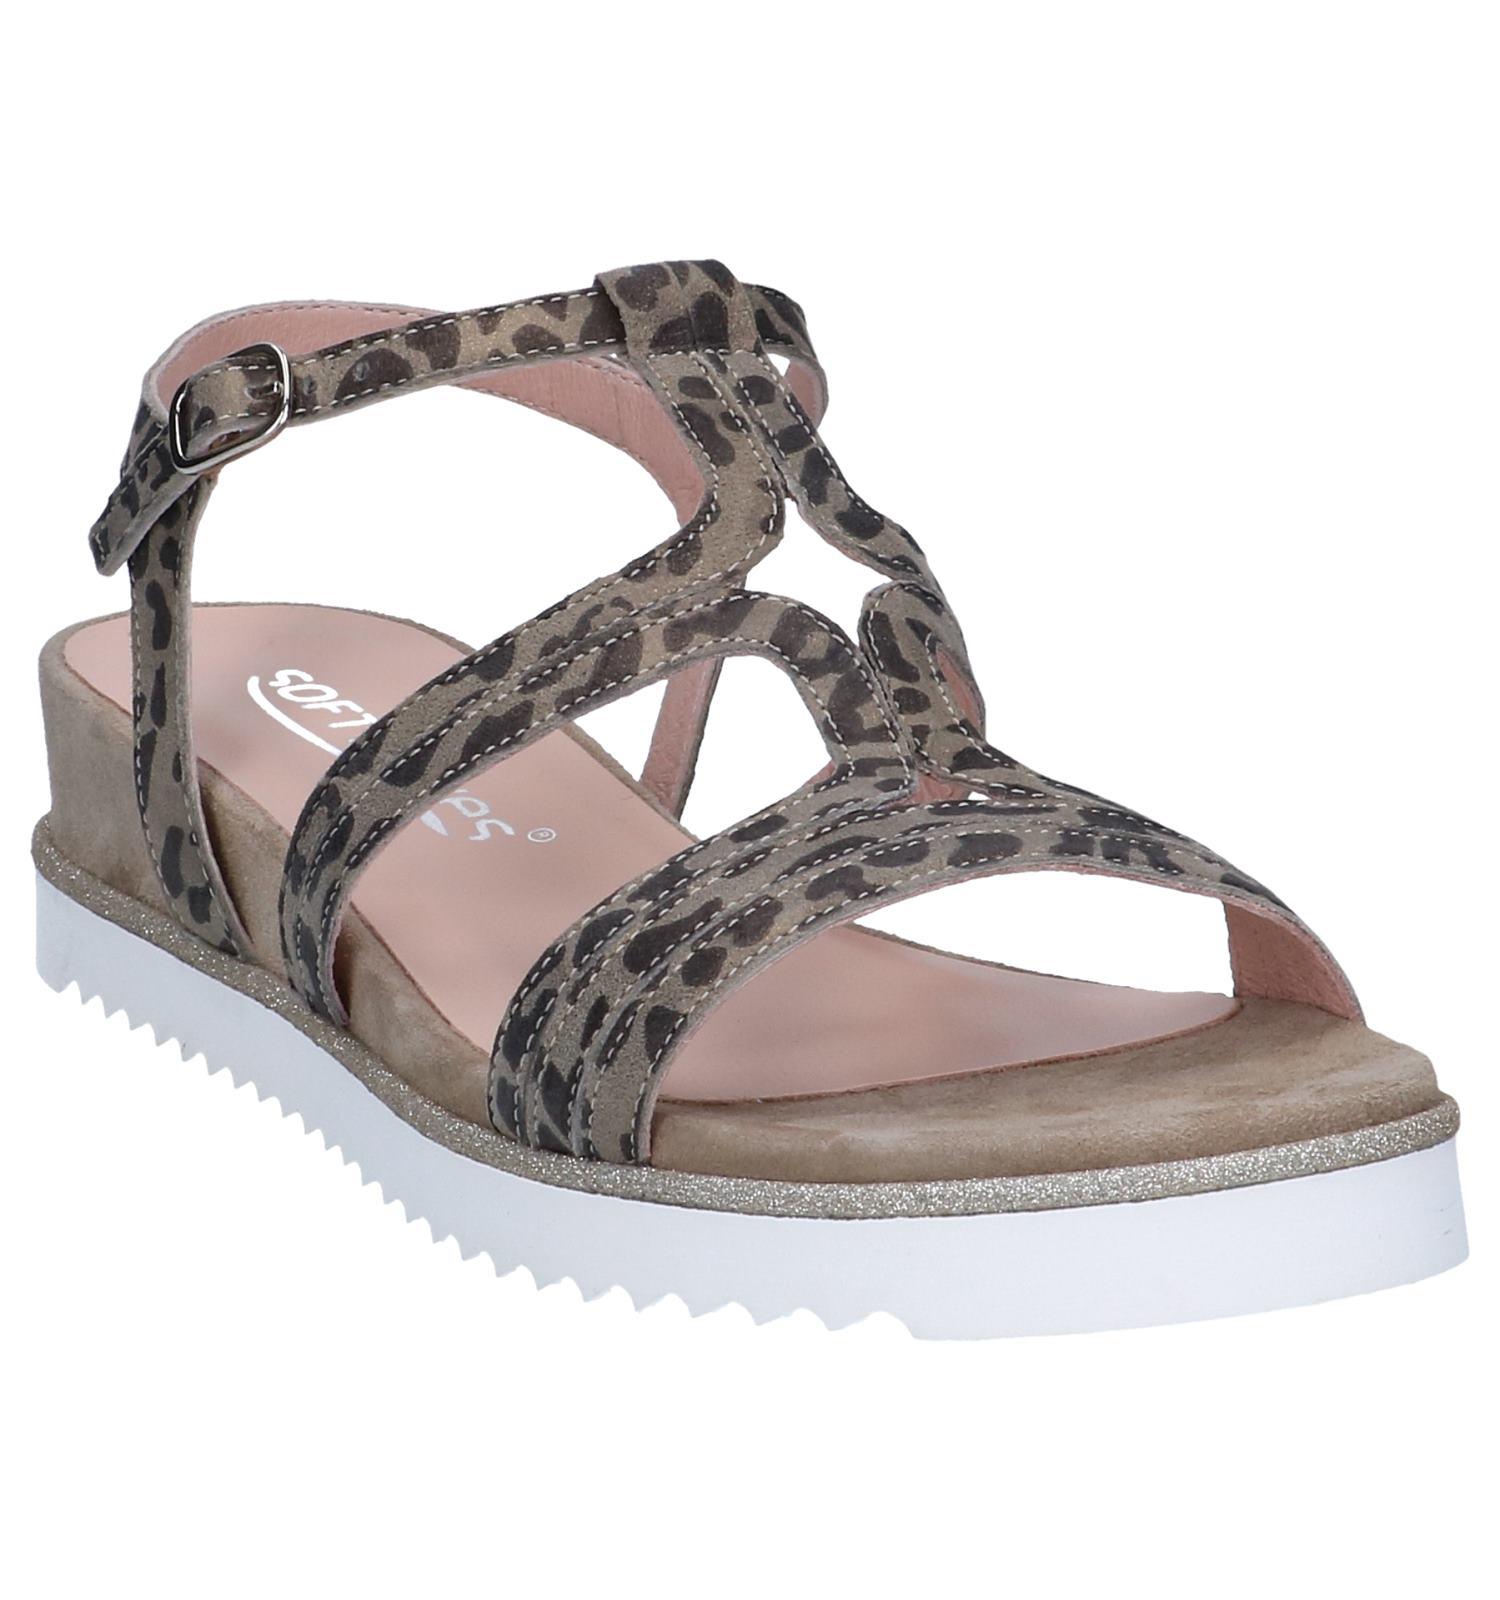 Softwaves Taupe Softwaves Sandalen Taupe Sandalen Softwaves Taupe Sandalen Sandalen Taupe Sandalen Taupe Softwaves Softwaves lcK3JTF1